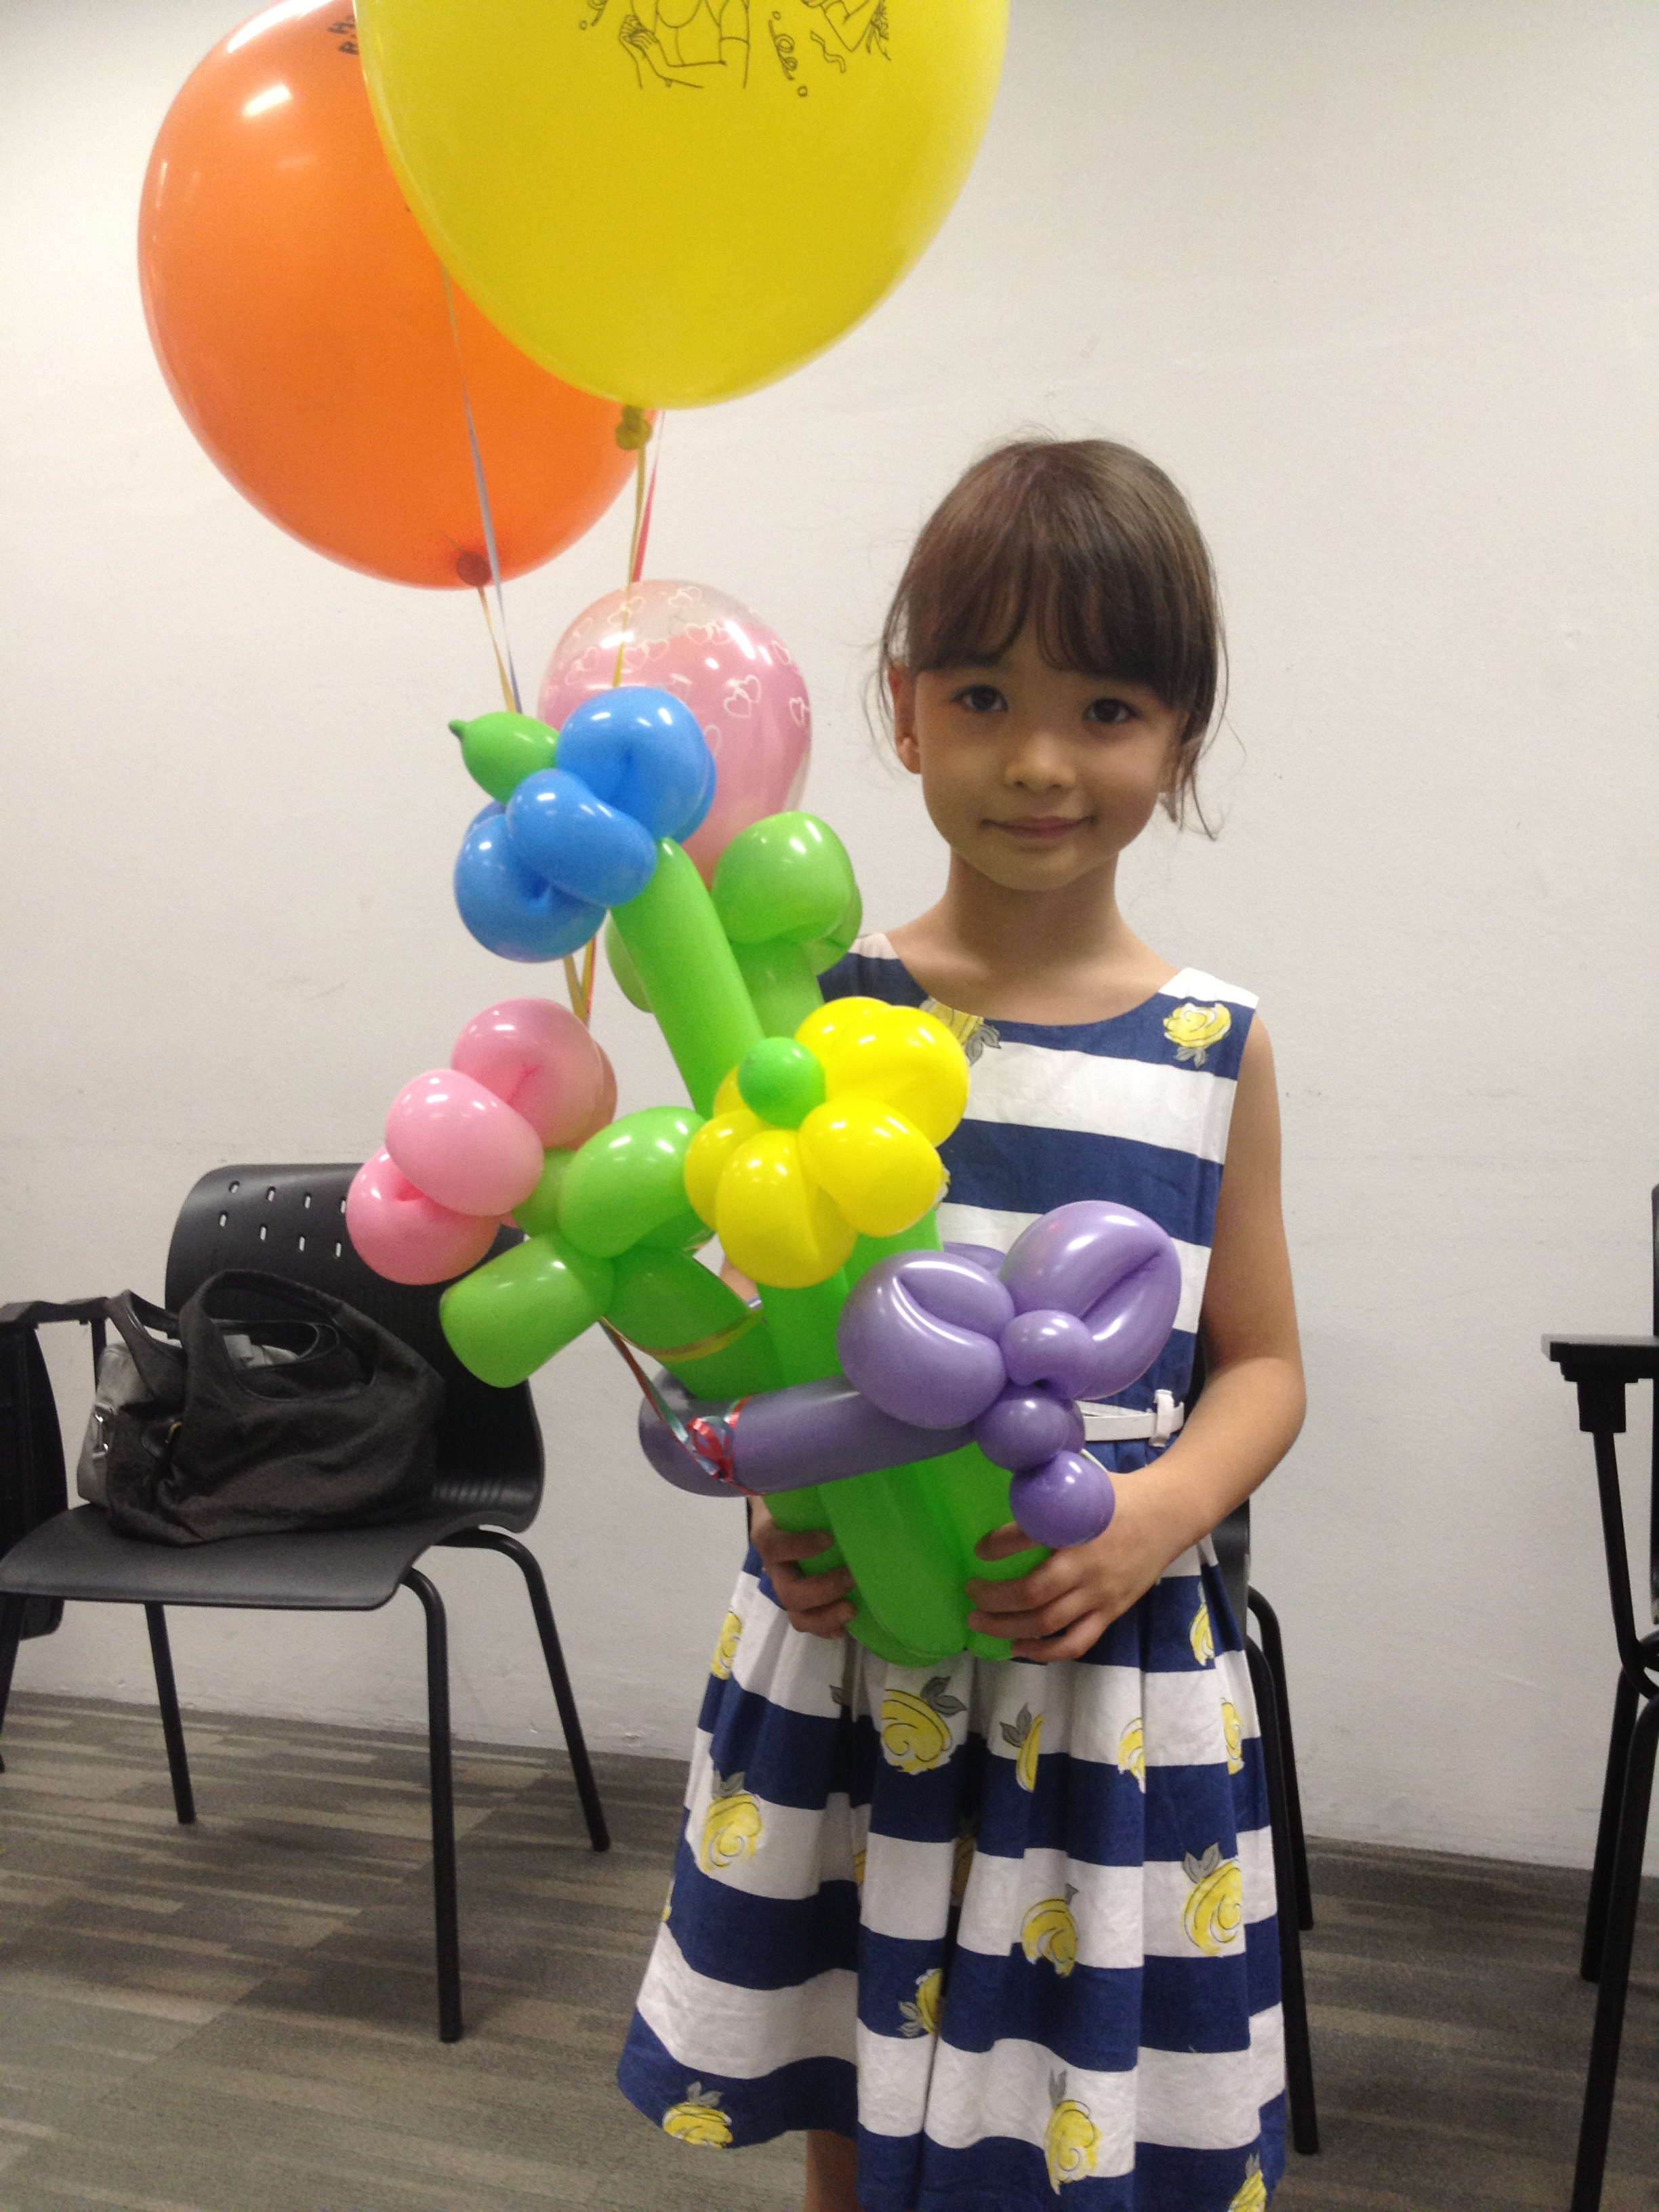 Singapore Balloon Sculpting Service That Balloons